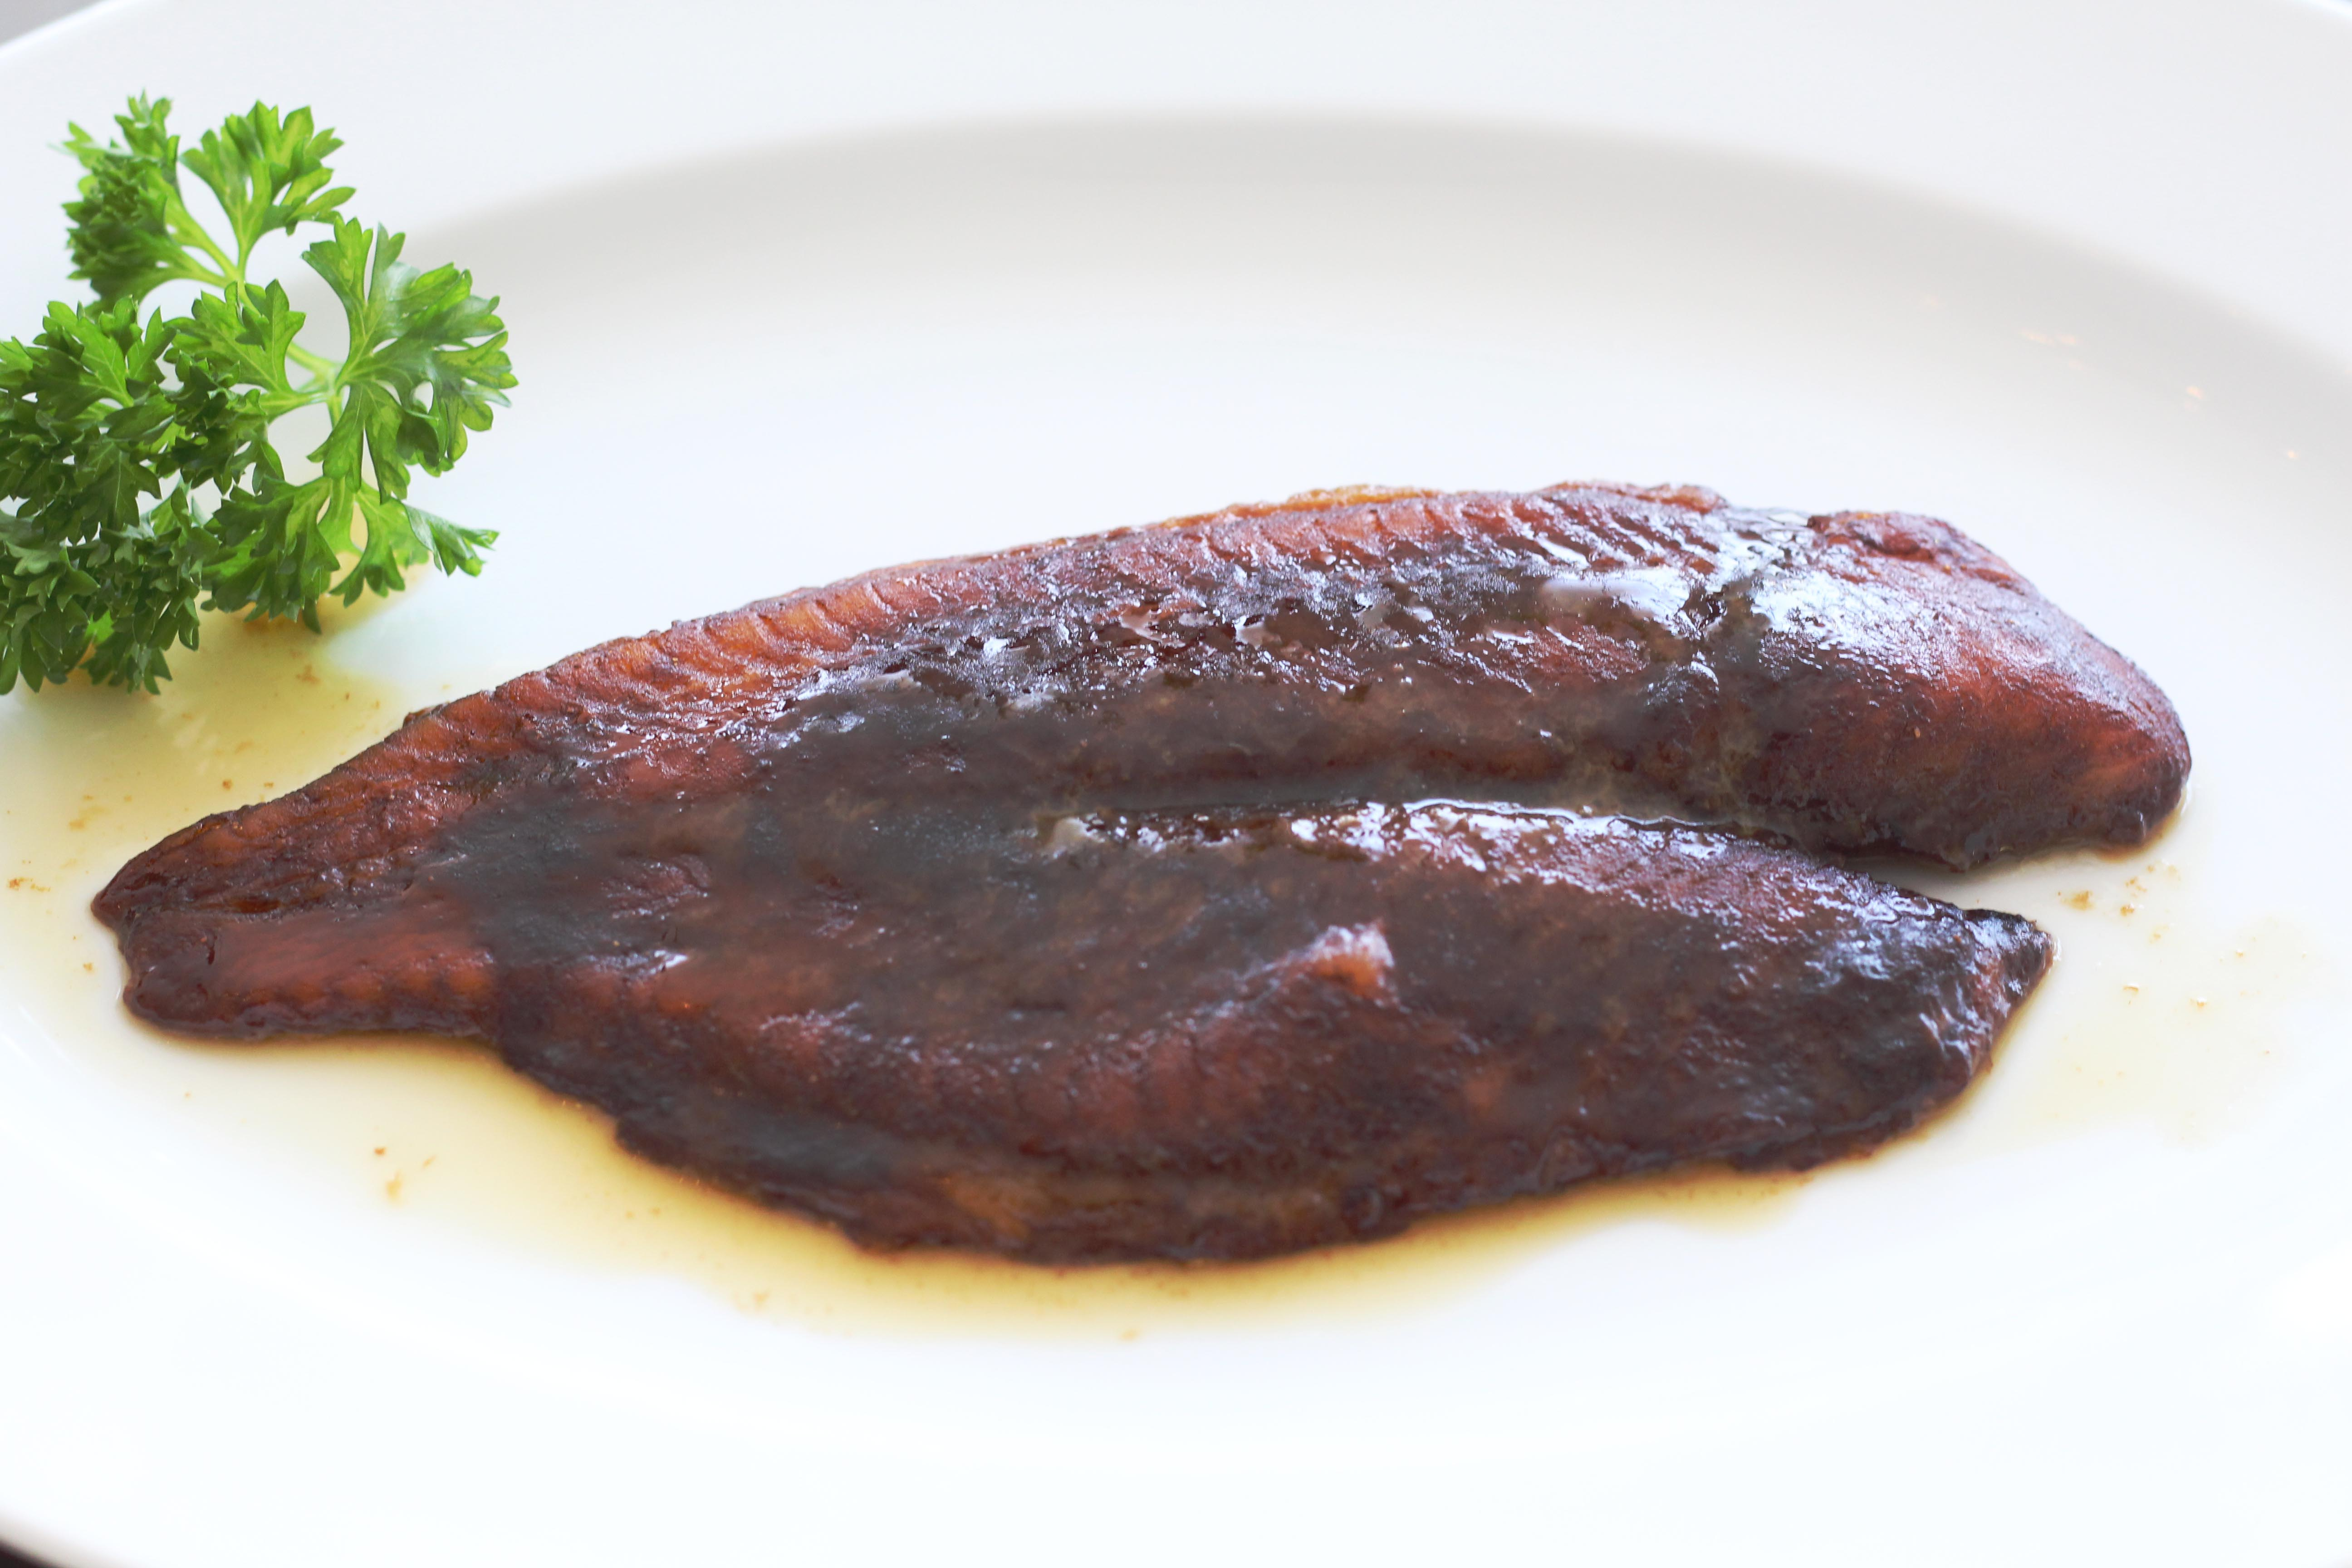 Marinated fish fillets